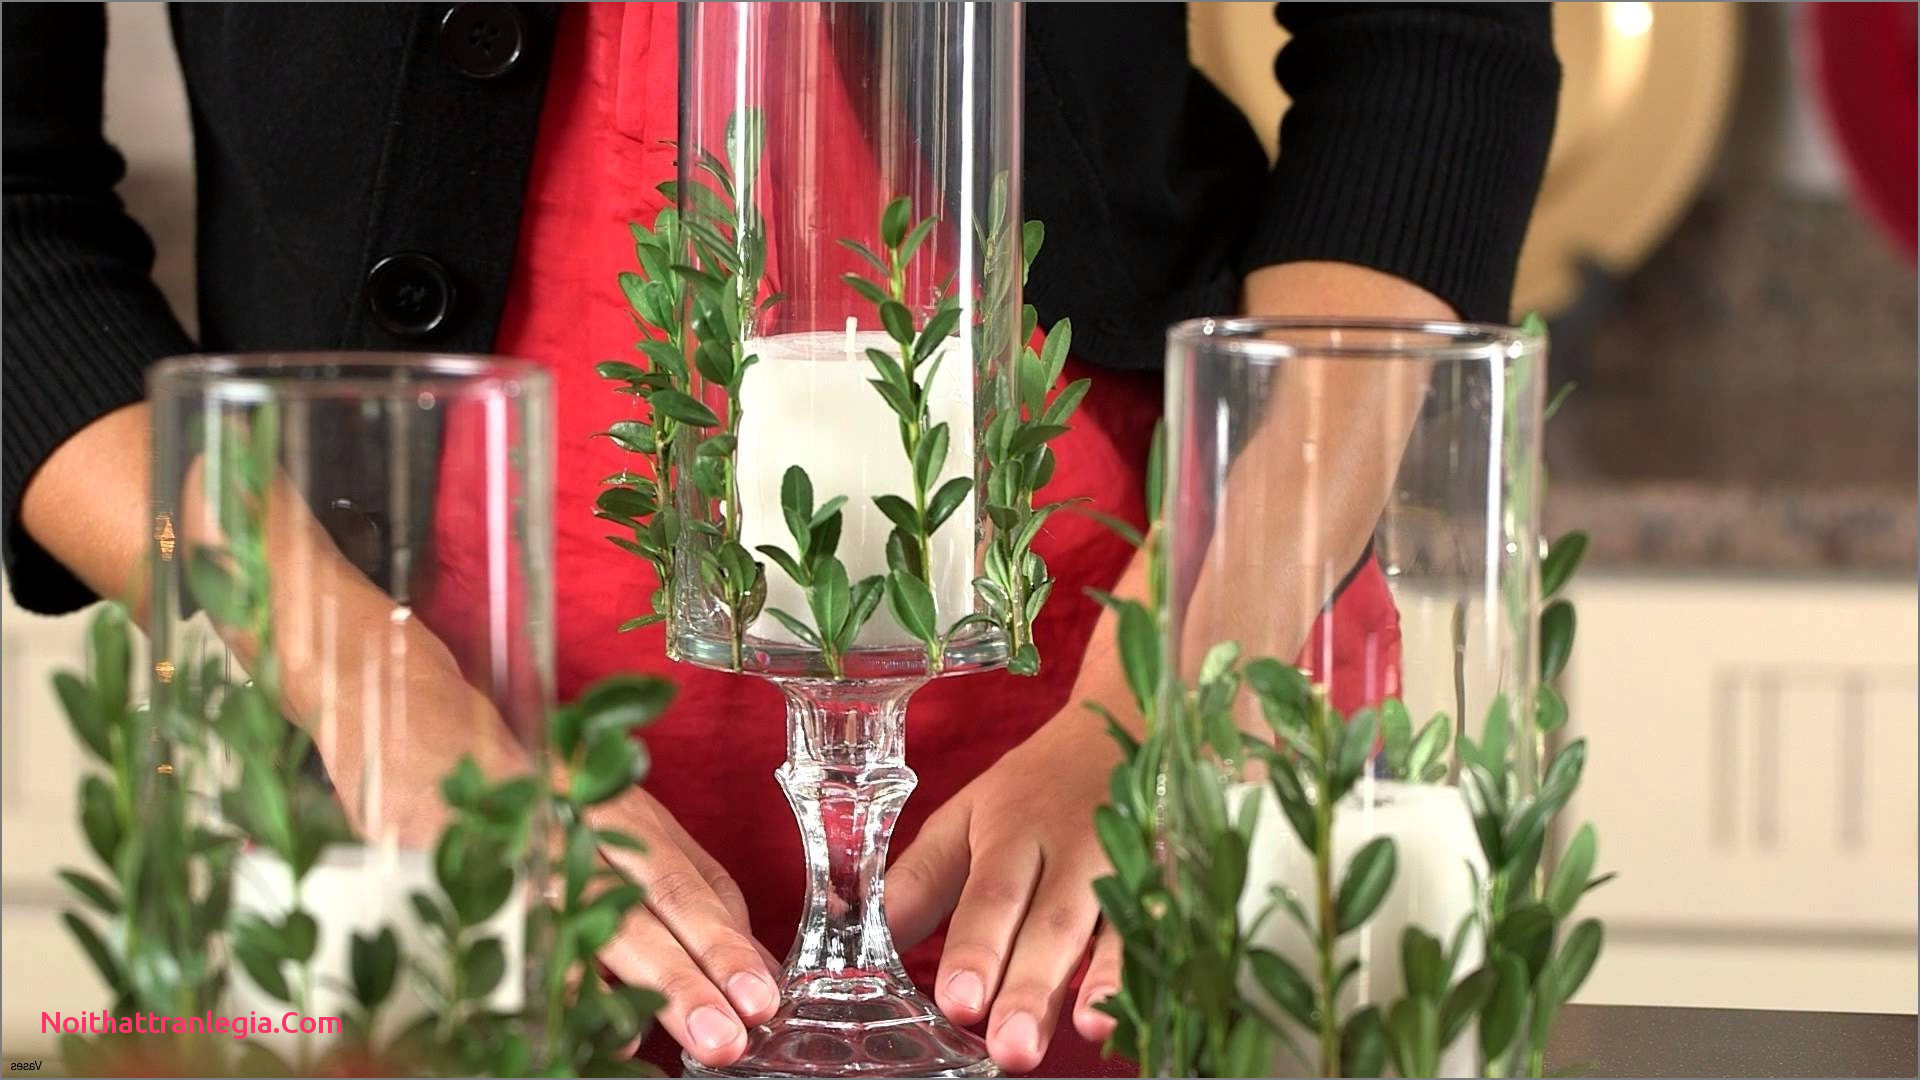 small glass vases for centerpieces of 20 wedding vases noithattranlegia vases design pertaining to wedding centerpiece decoration ideas unique dollar tree wedding decorations awesome h vases dollar vase i 0d